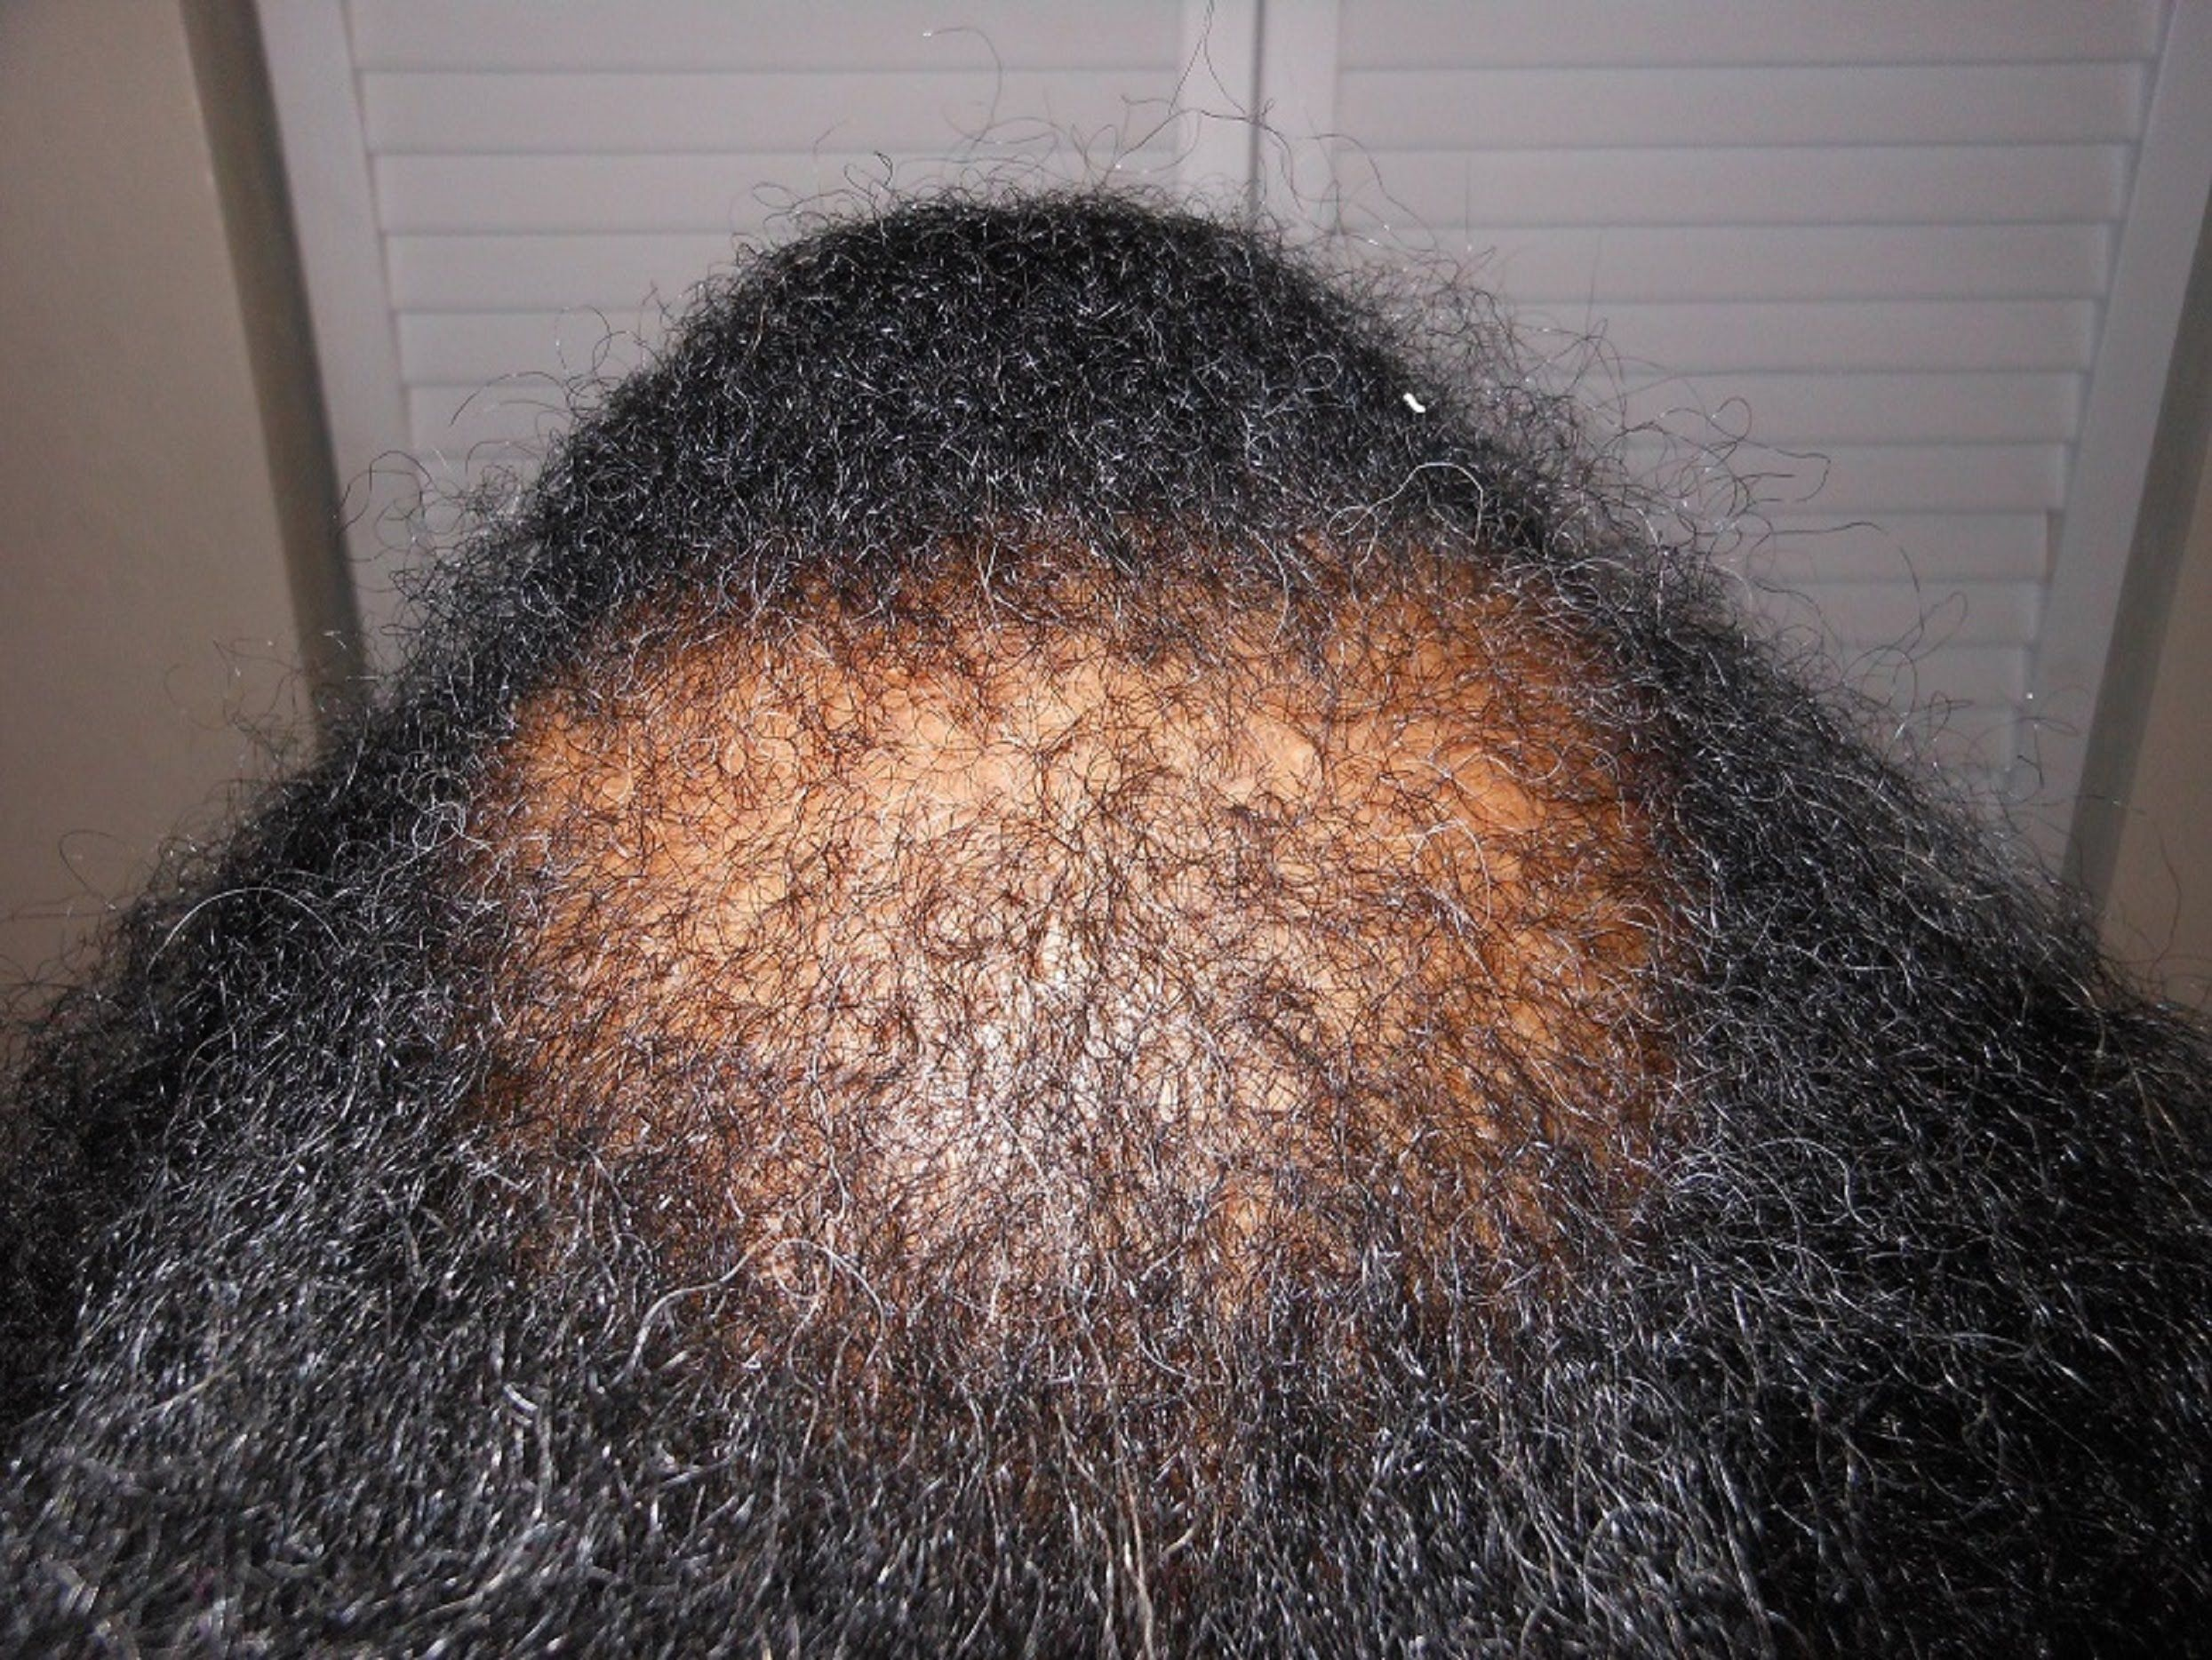 Treatment for Bald Spots and Thinning Hair